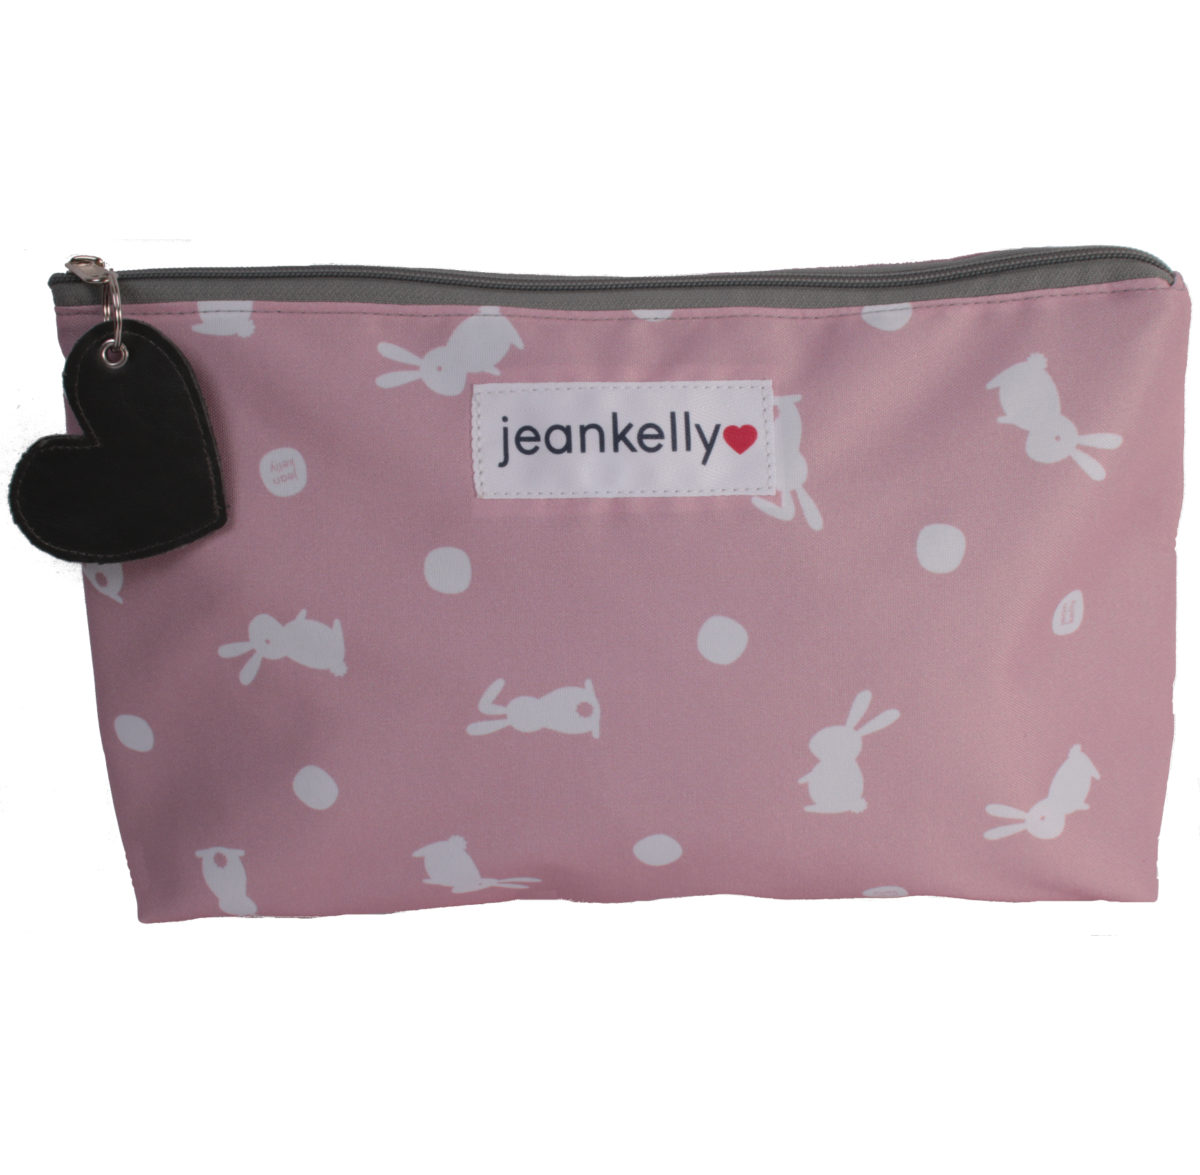 jeankelly_pouch pink